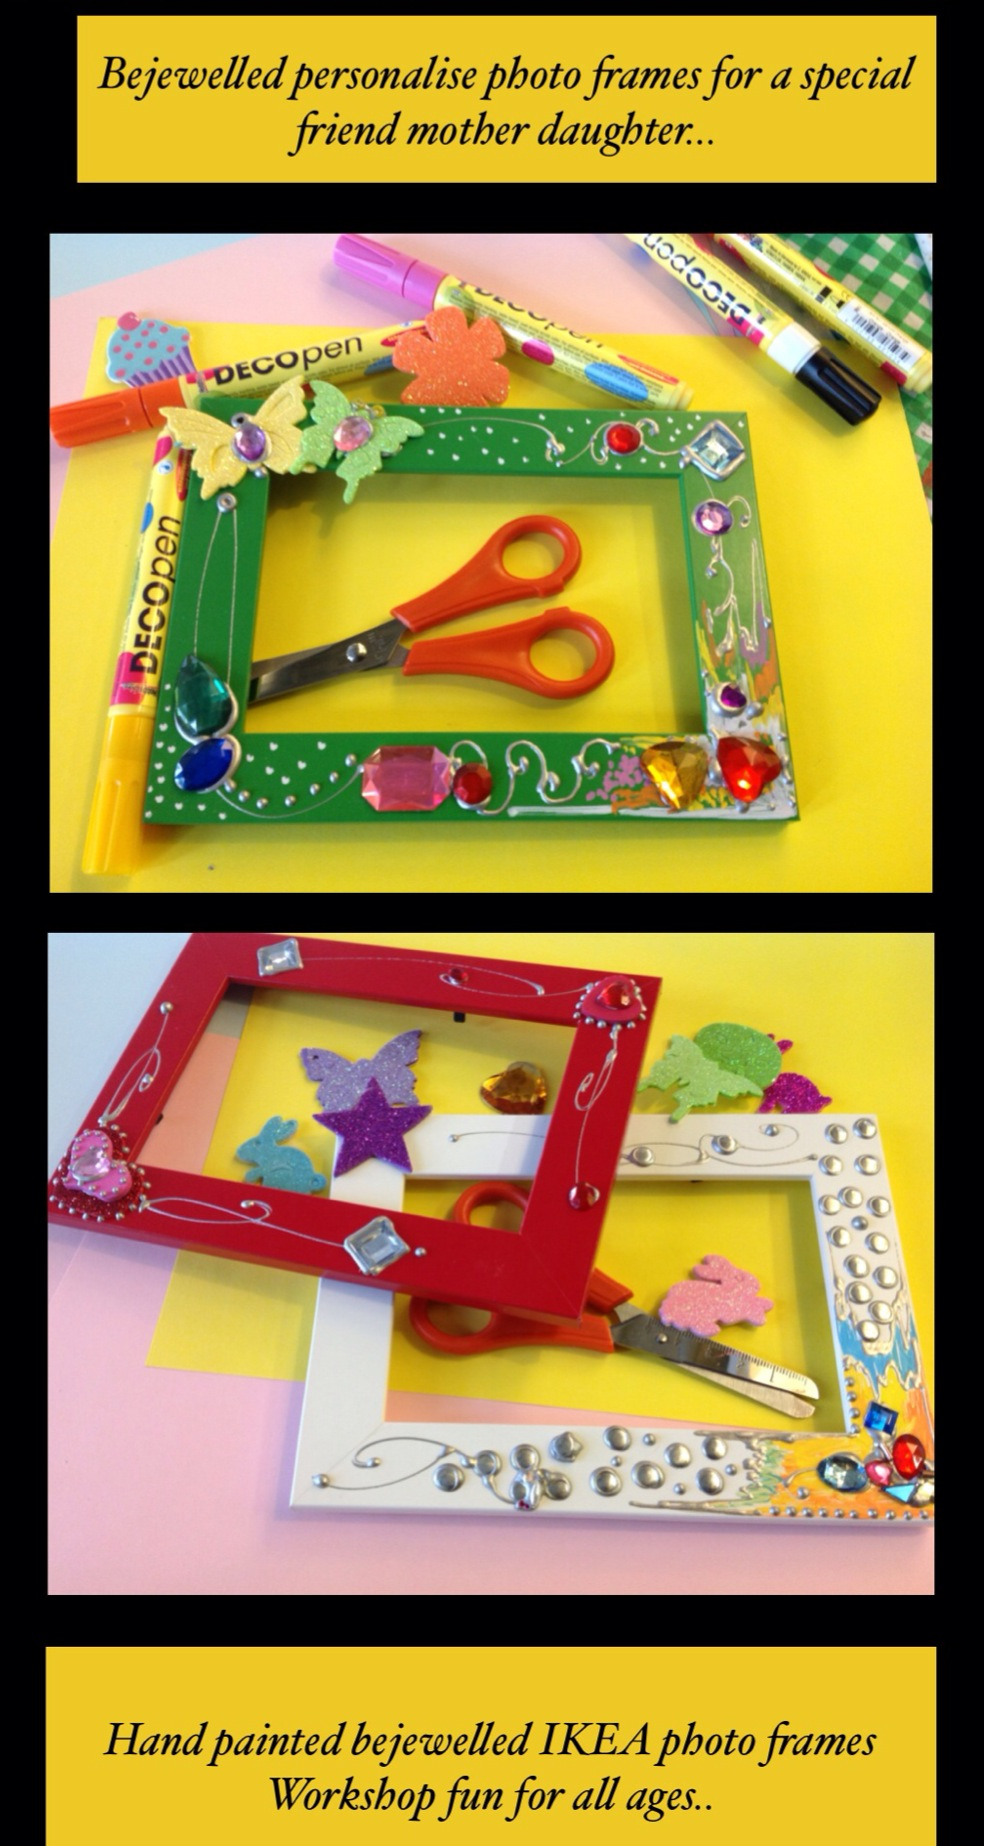 IKEA photo frames decorated during an IKEA arts and crafts workshop as part of IKEA's school holiday children's entertainment at IKEA Lakeside, Thurrock, UK